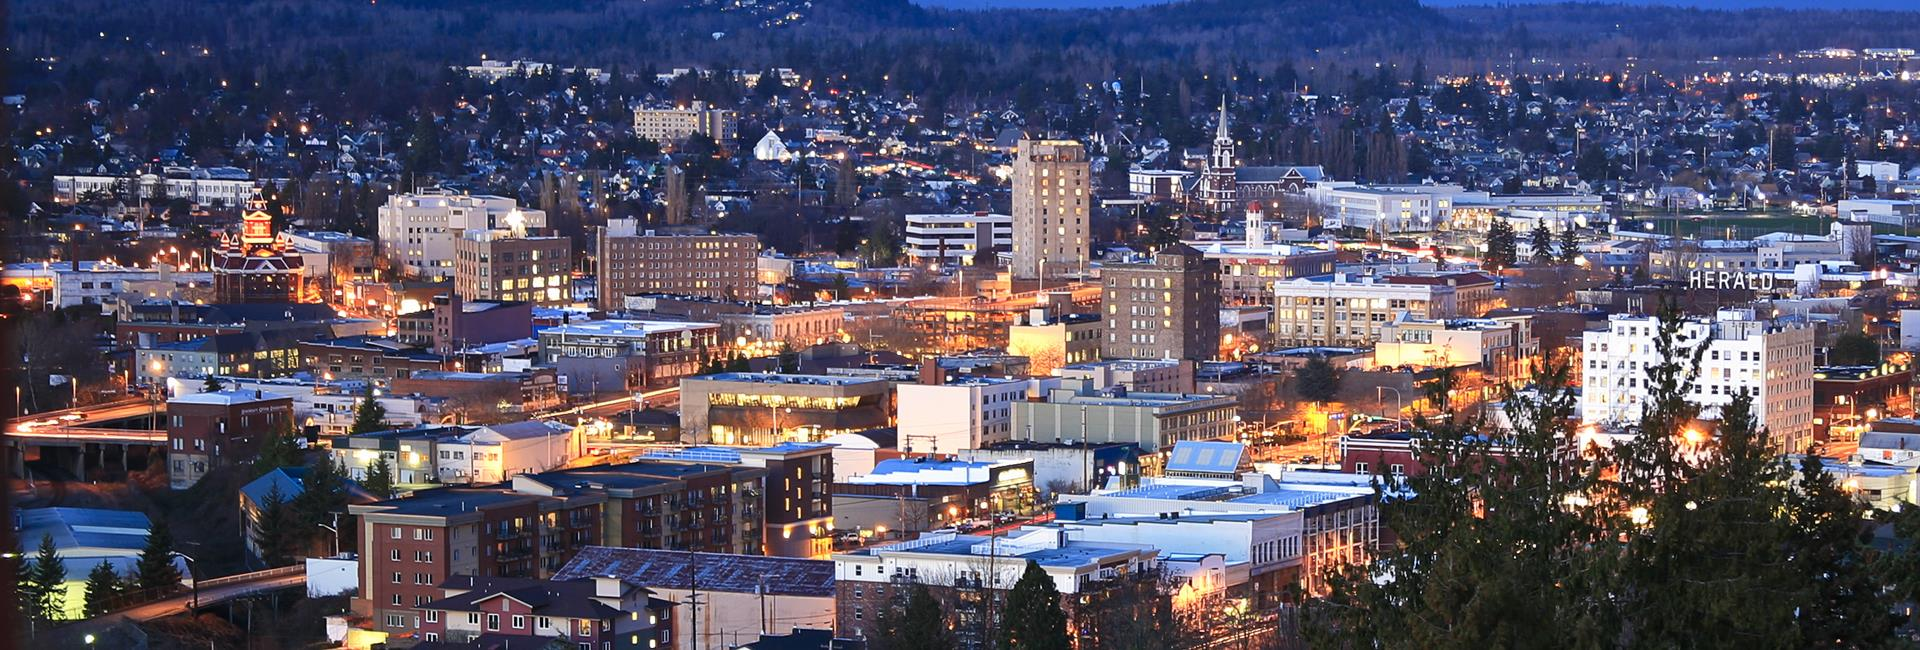 Beautiful downtown bellingham.  Herald building on far right